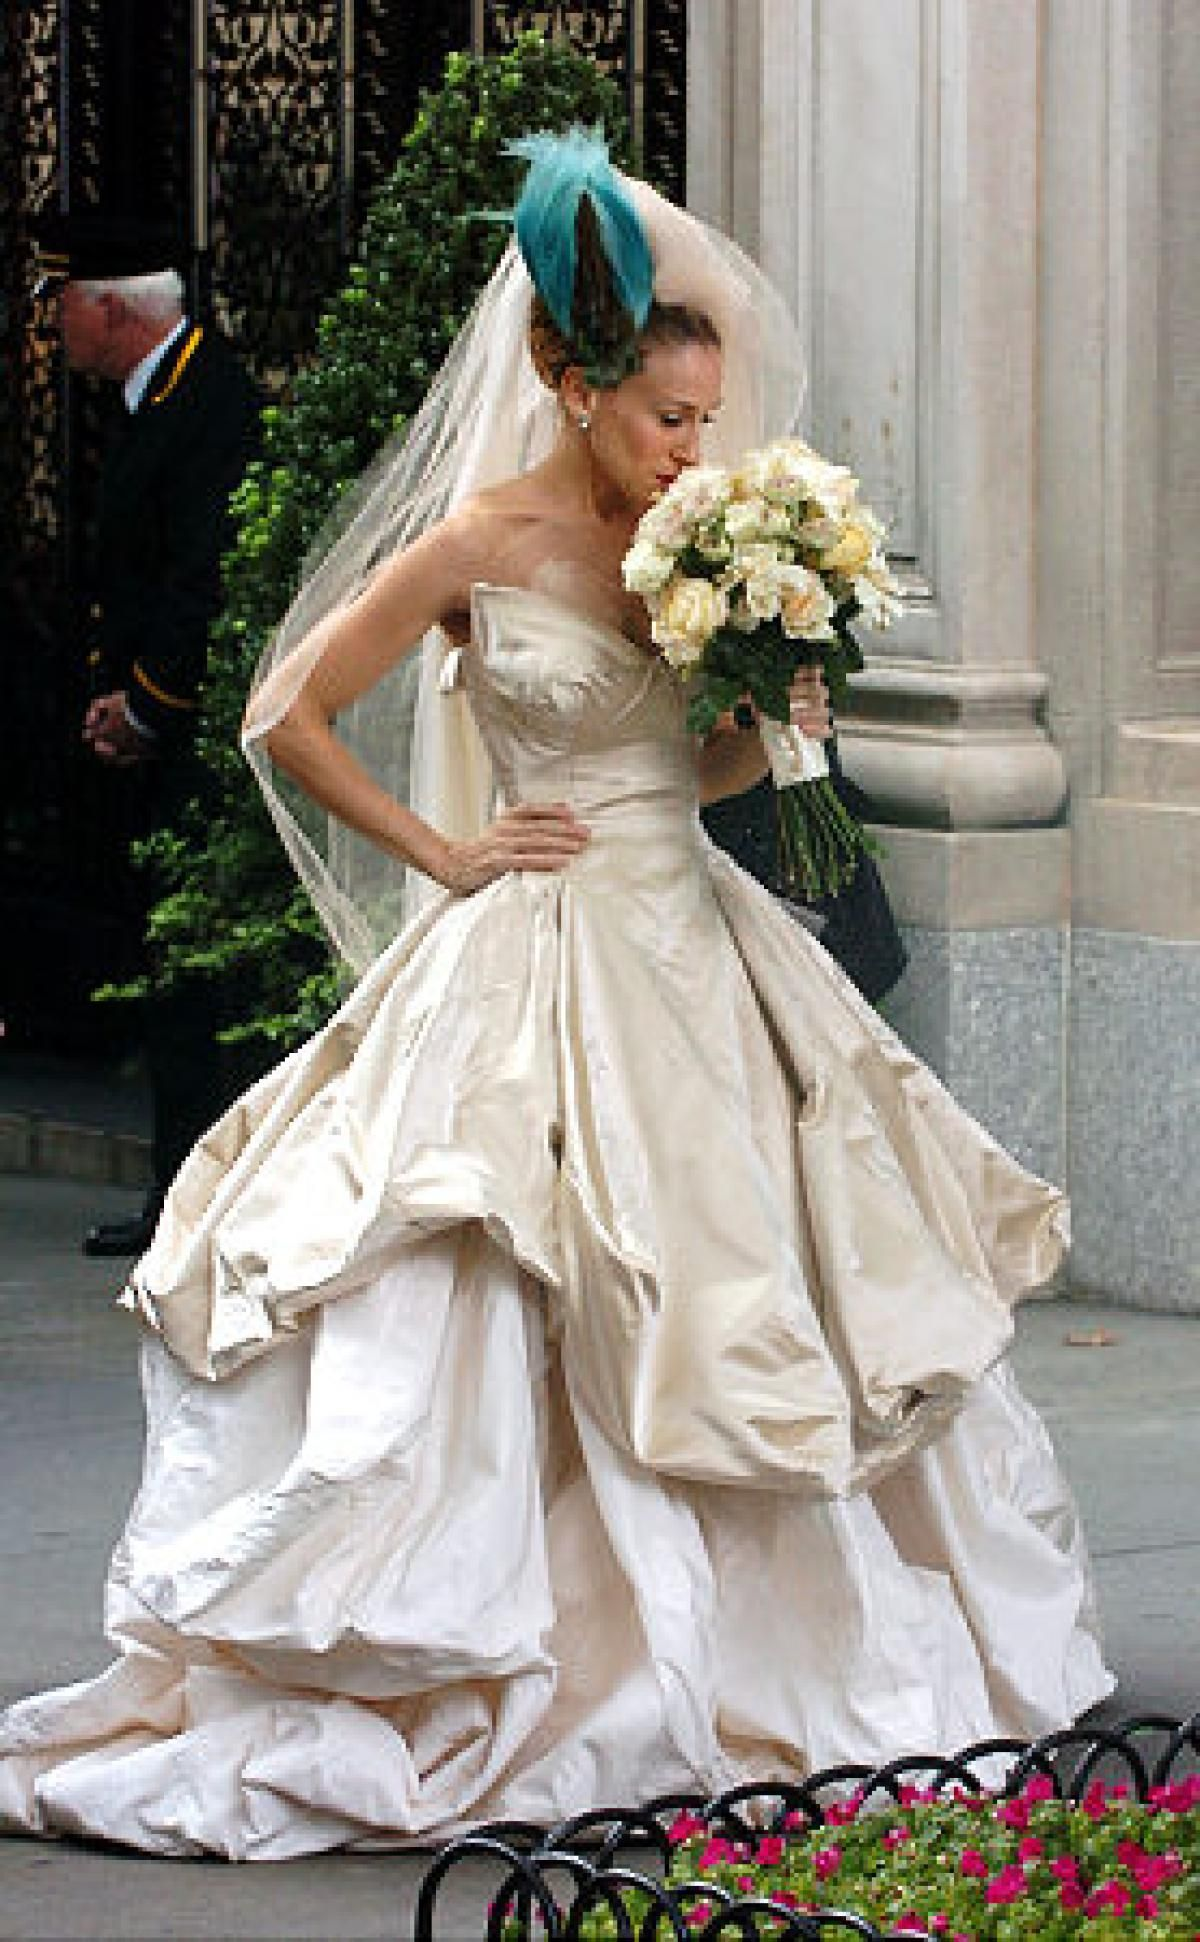 Sex and the City\' wedding | Carrie bradshaw, Sarah jessica parker ...